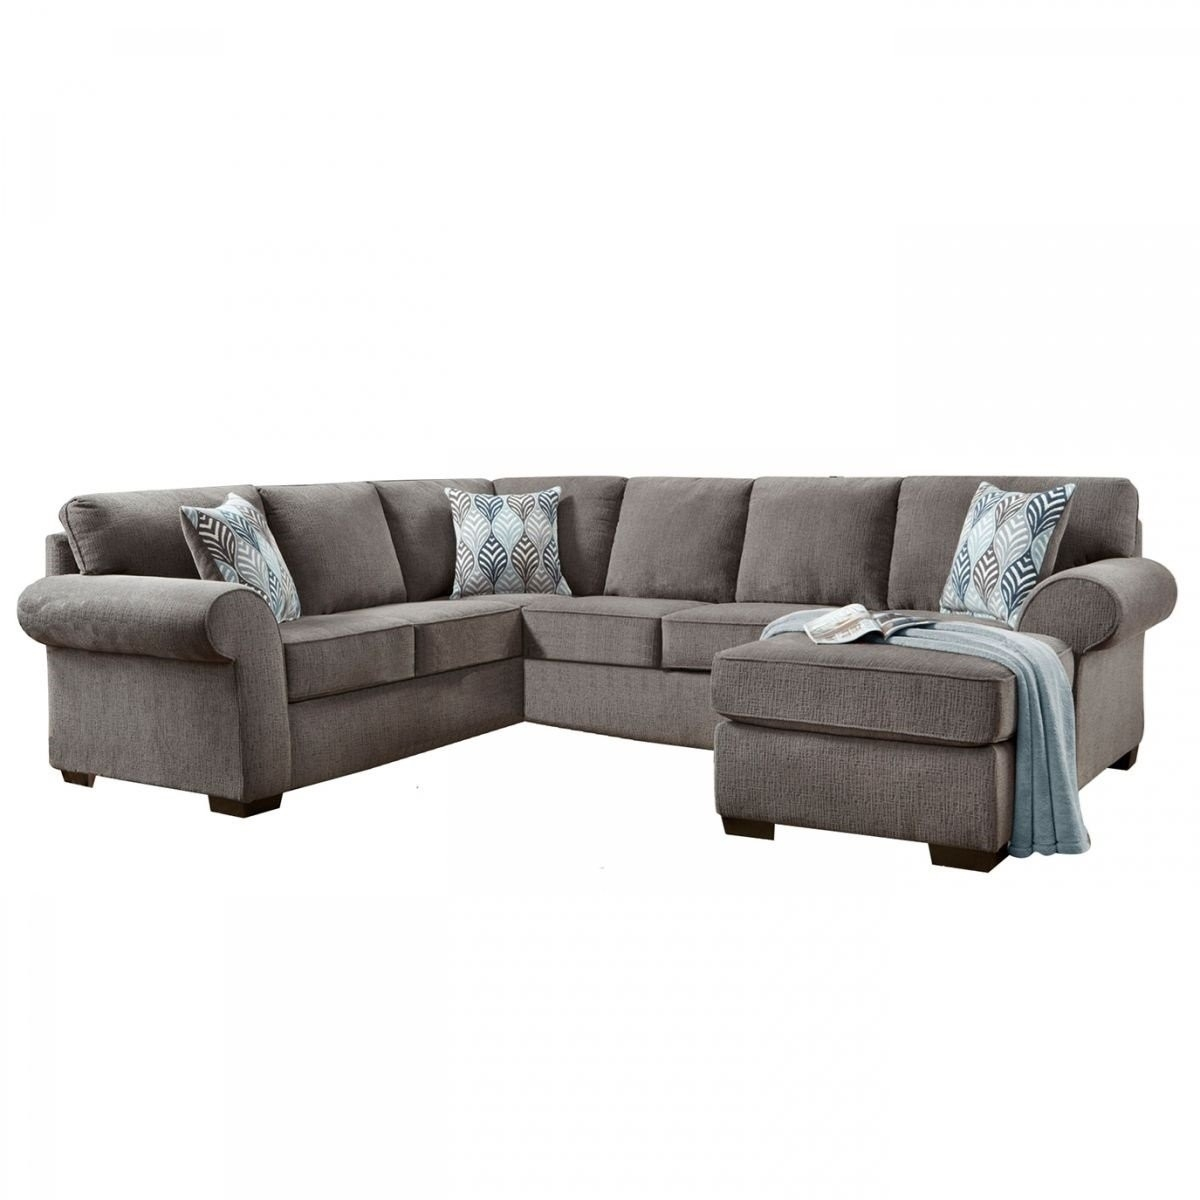 Grey Sectional Mcdade Graphite 2 Piece W Raf Chaise Living Spaces With Mcdade Graphite 2 Piece Sectionals With Laf Chaise (Image 6 of 25)